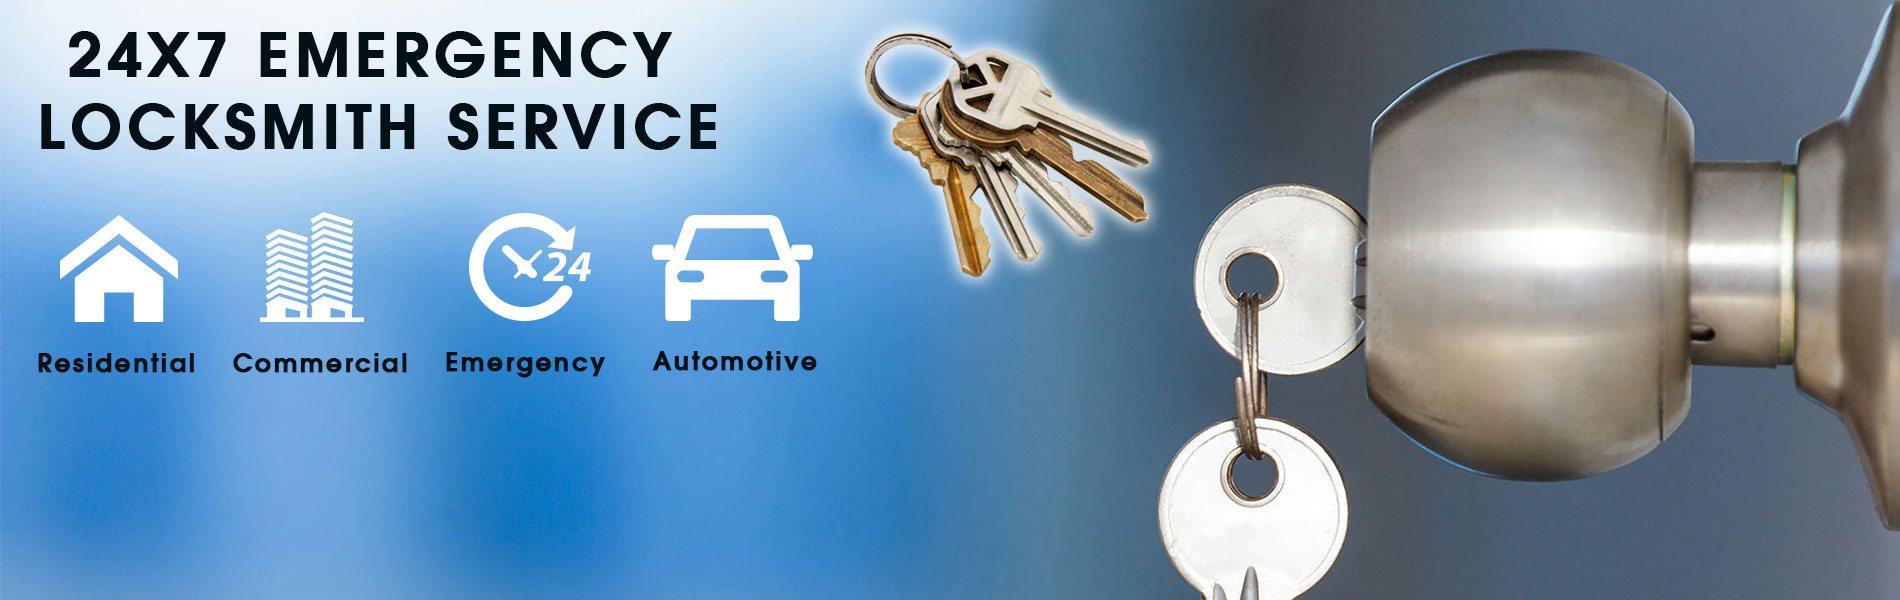 Golden Locksmith Services Olney, MD 301-804-9442